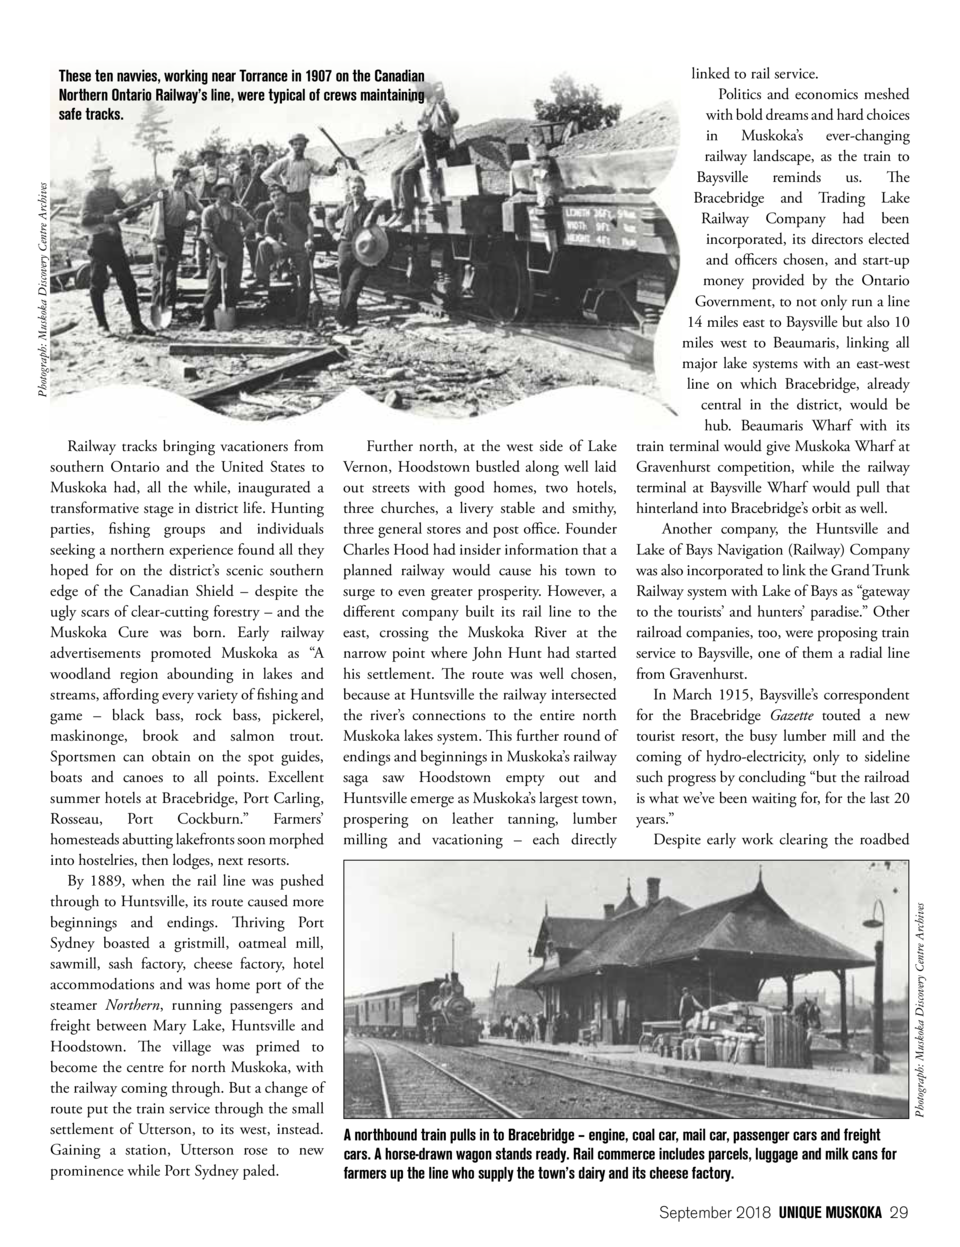 Photograph  Muskoka Discovery Centre Archives  These ten navvies, working near Torrance in 1907 on the Canadian Northern O...